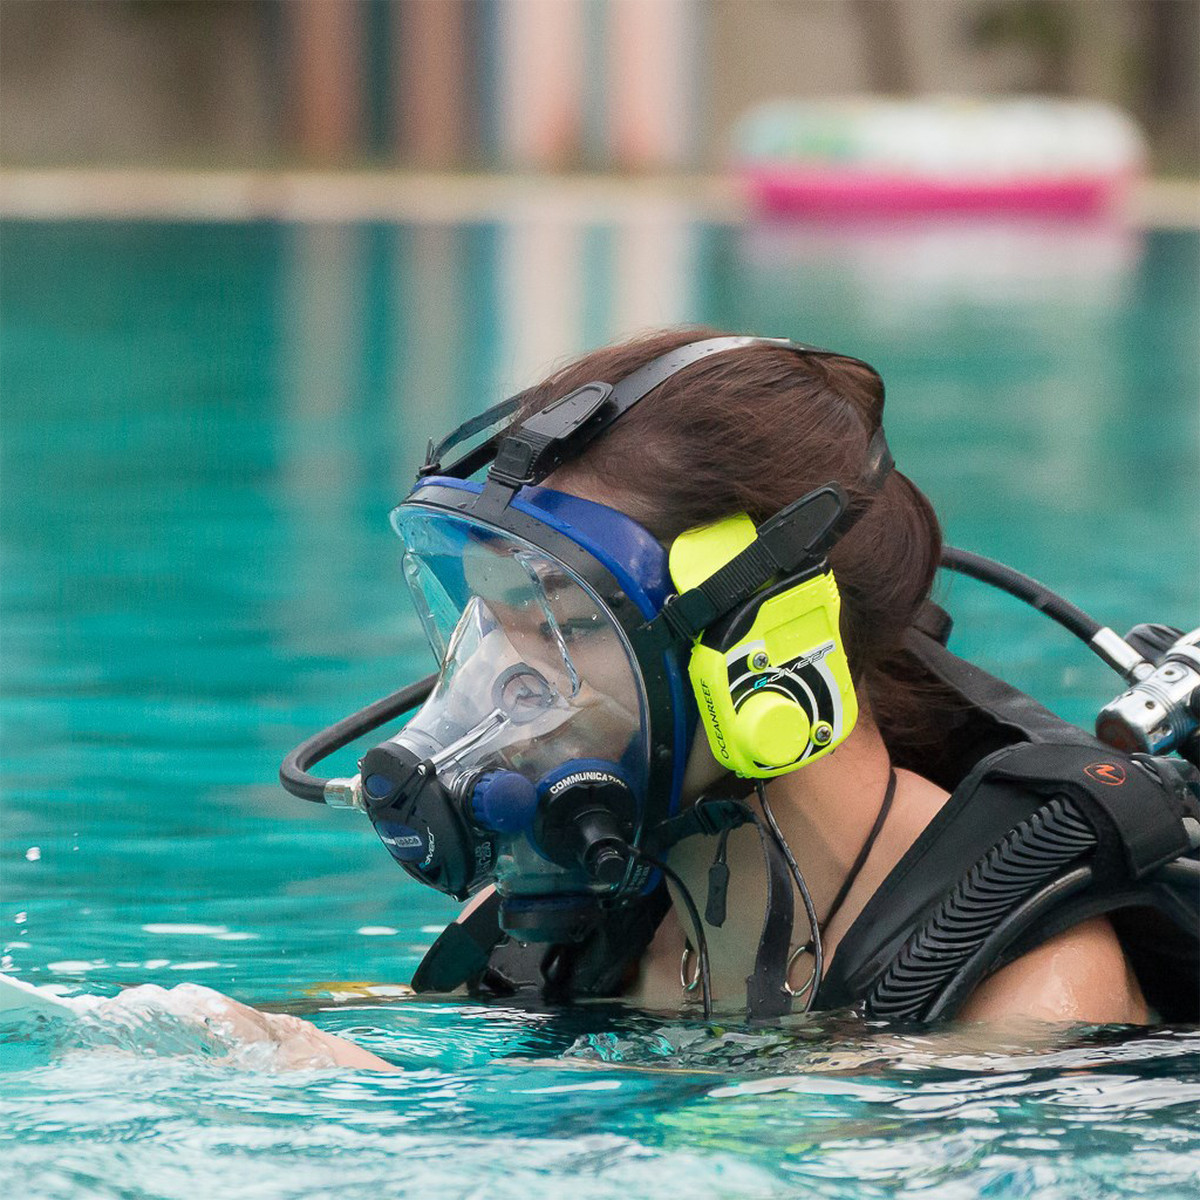 WHY DIVE A FULL FACE MASK?